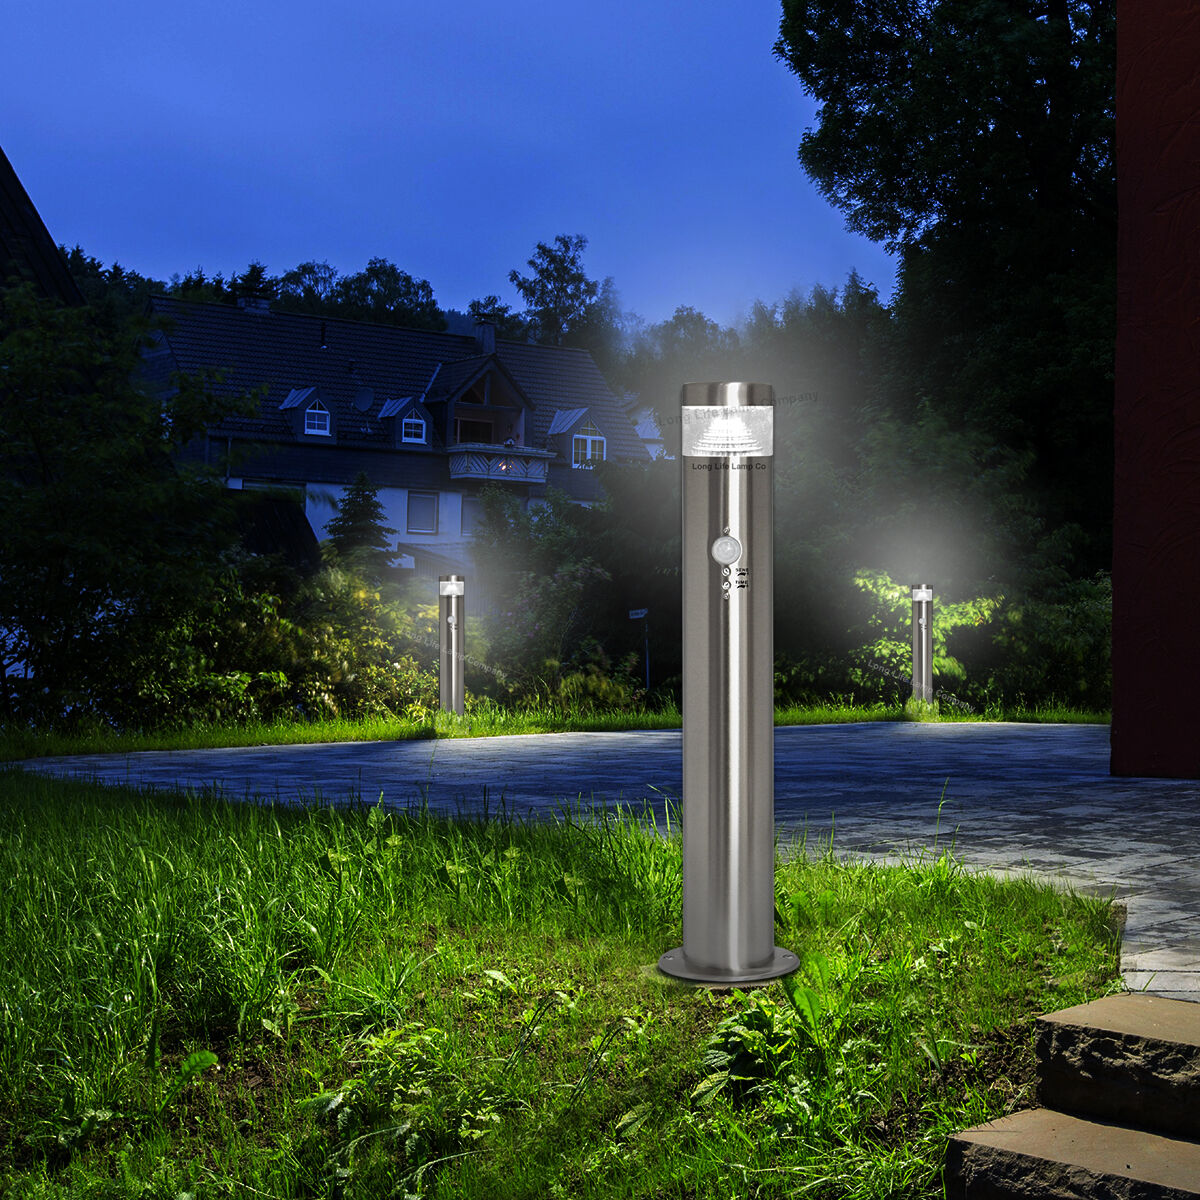 Pir Led Bollard Garden Lamp Post Stainless Steel Outdoor Motion Sensor Light Is A Very Brilliant To Up Your And Fronts